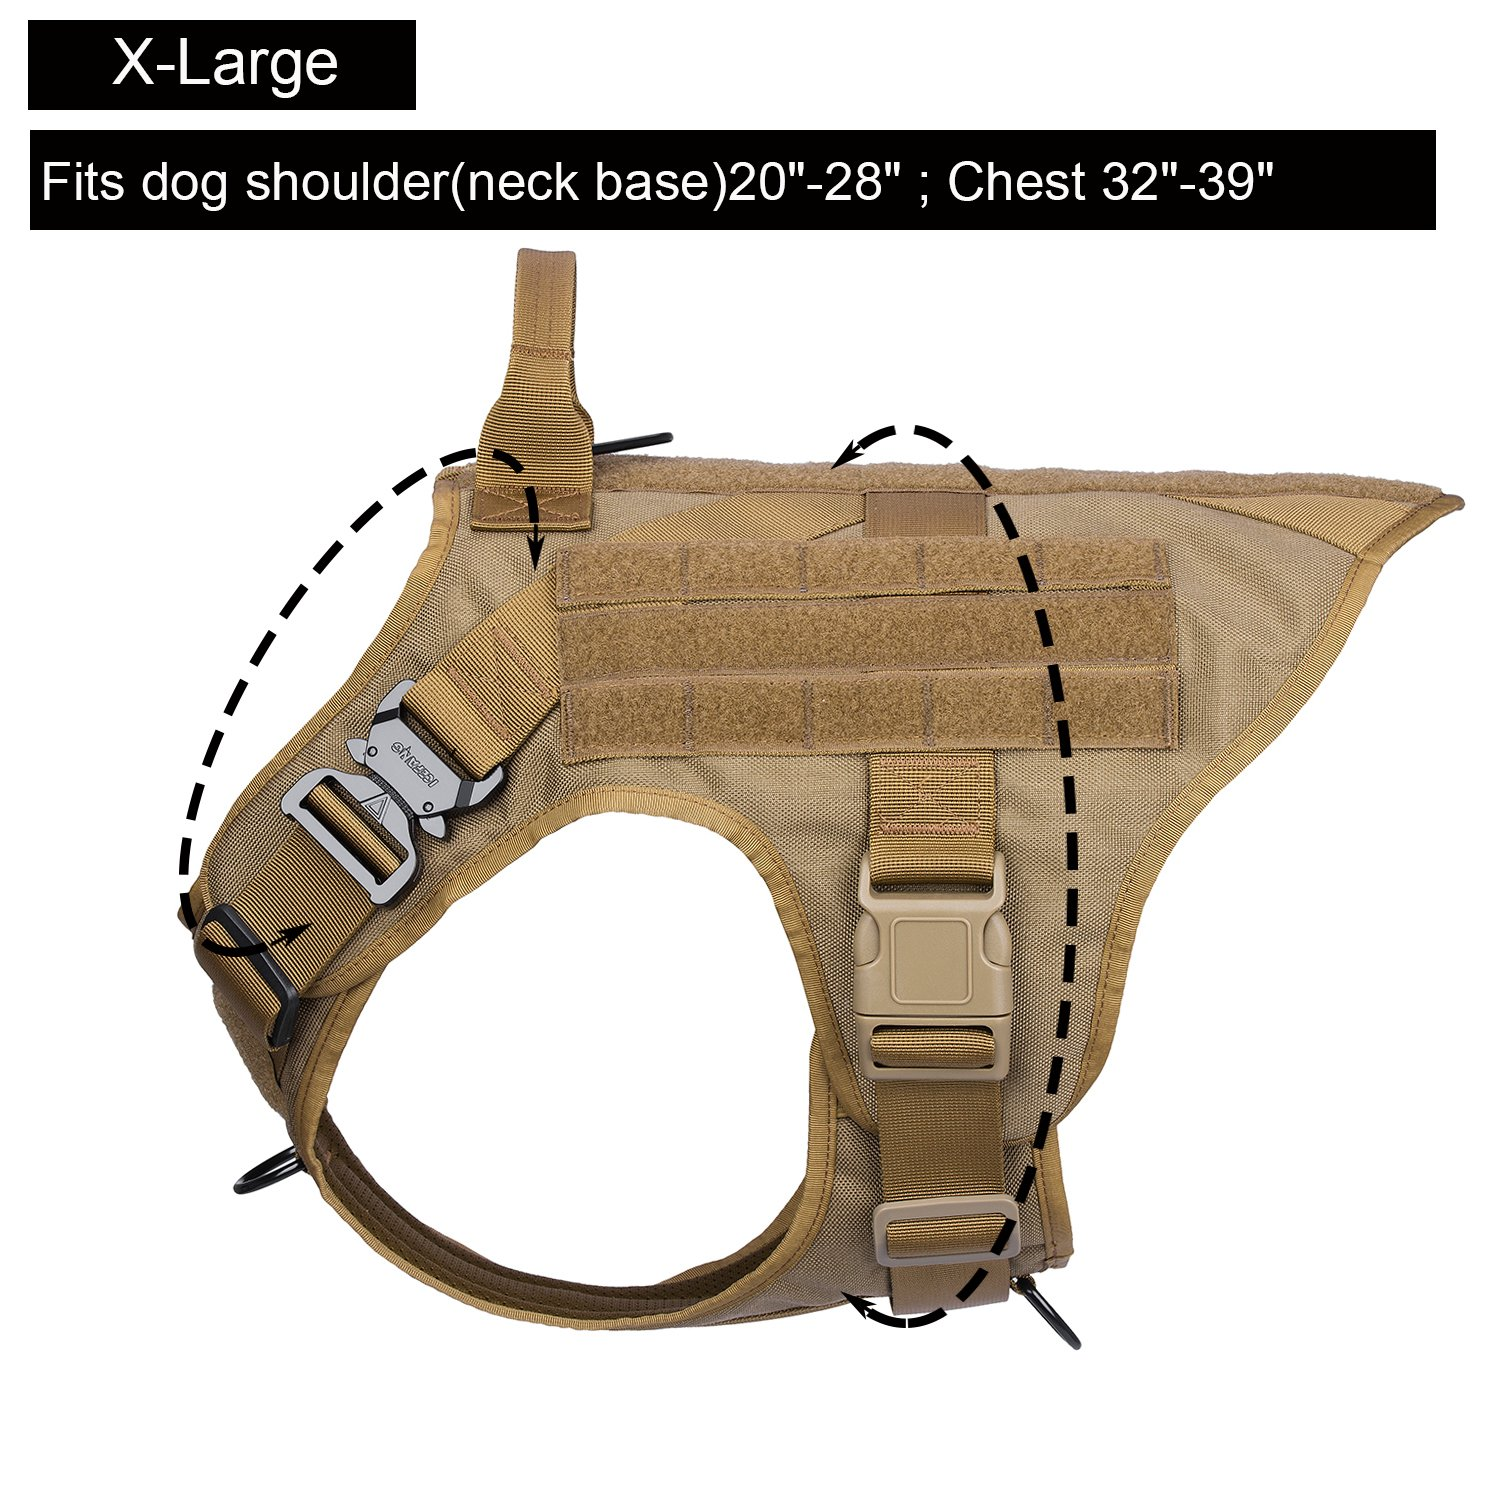 ICEFANG Dog Modular Harness,Military K9 Working Dog Tactical Molle Vest,No Pull Front Clip,Unbreakable Metal Quick Release Buckle Snap-Proof (XL (32''-39'' Girth), CB-Molle Half Body) by ICEFANG (Image #3)